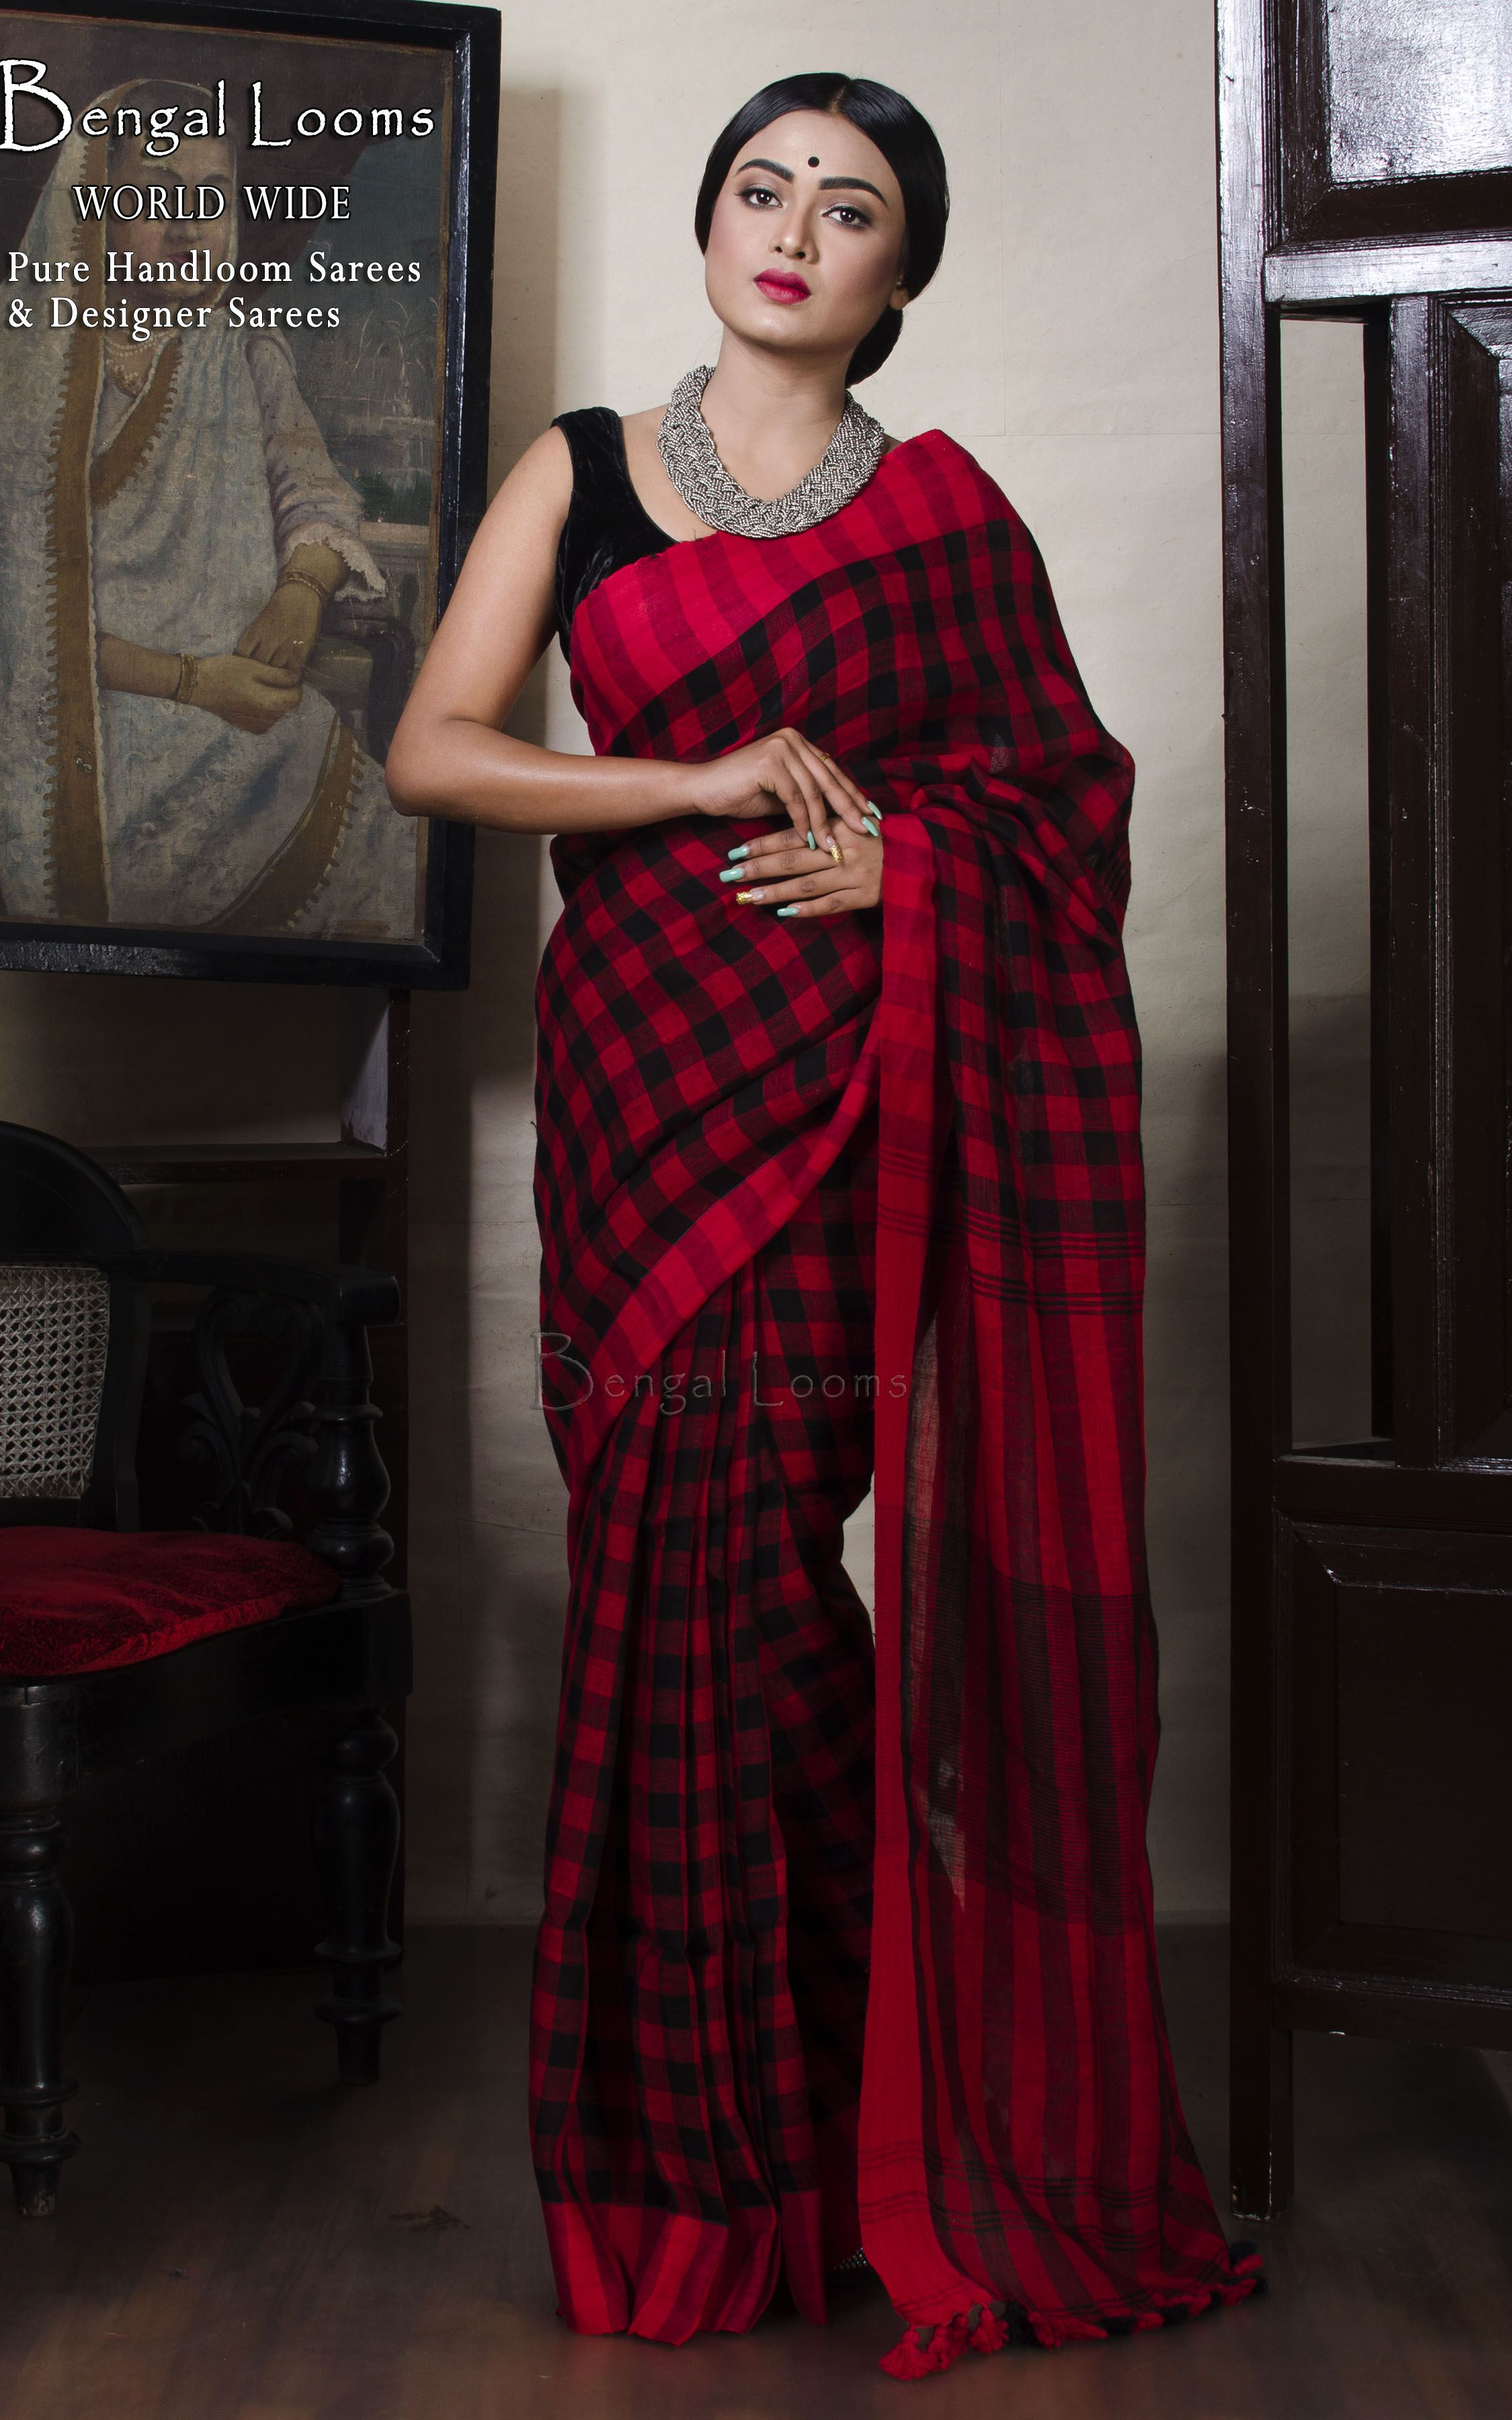 ecde2bdb0de5b0 Linen Saree | Linen Sarees in 2019 | Saree, Saree dress, Indian sarees